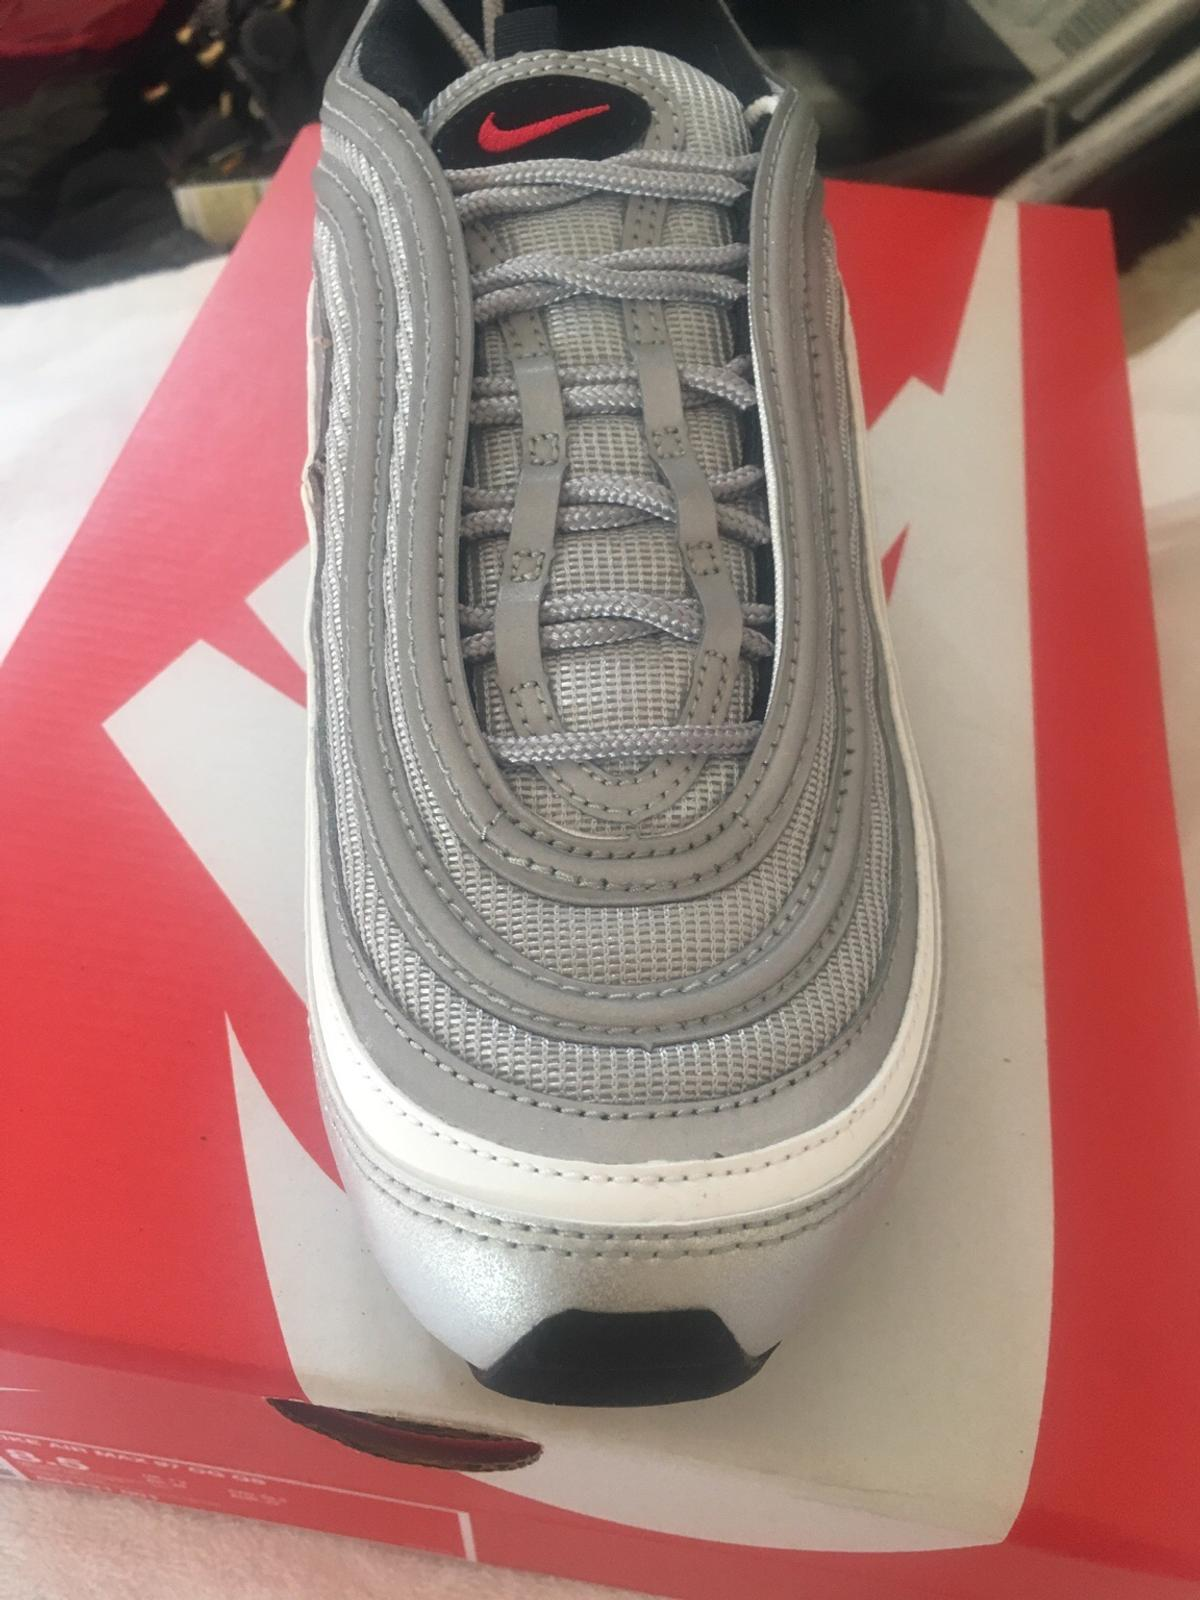 Air Max 97 Ultra 17 'Anthracite' Nike 918356 001 GOAT